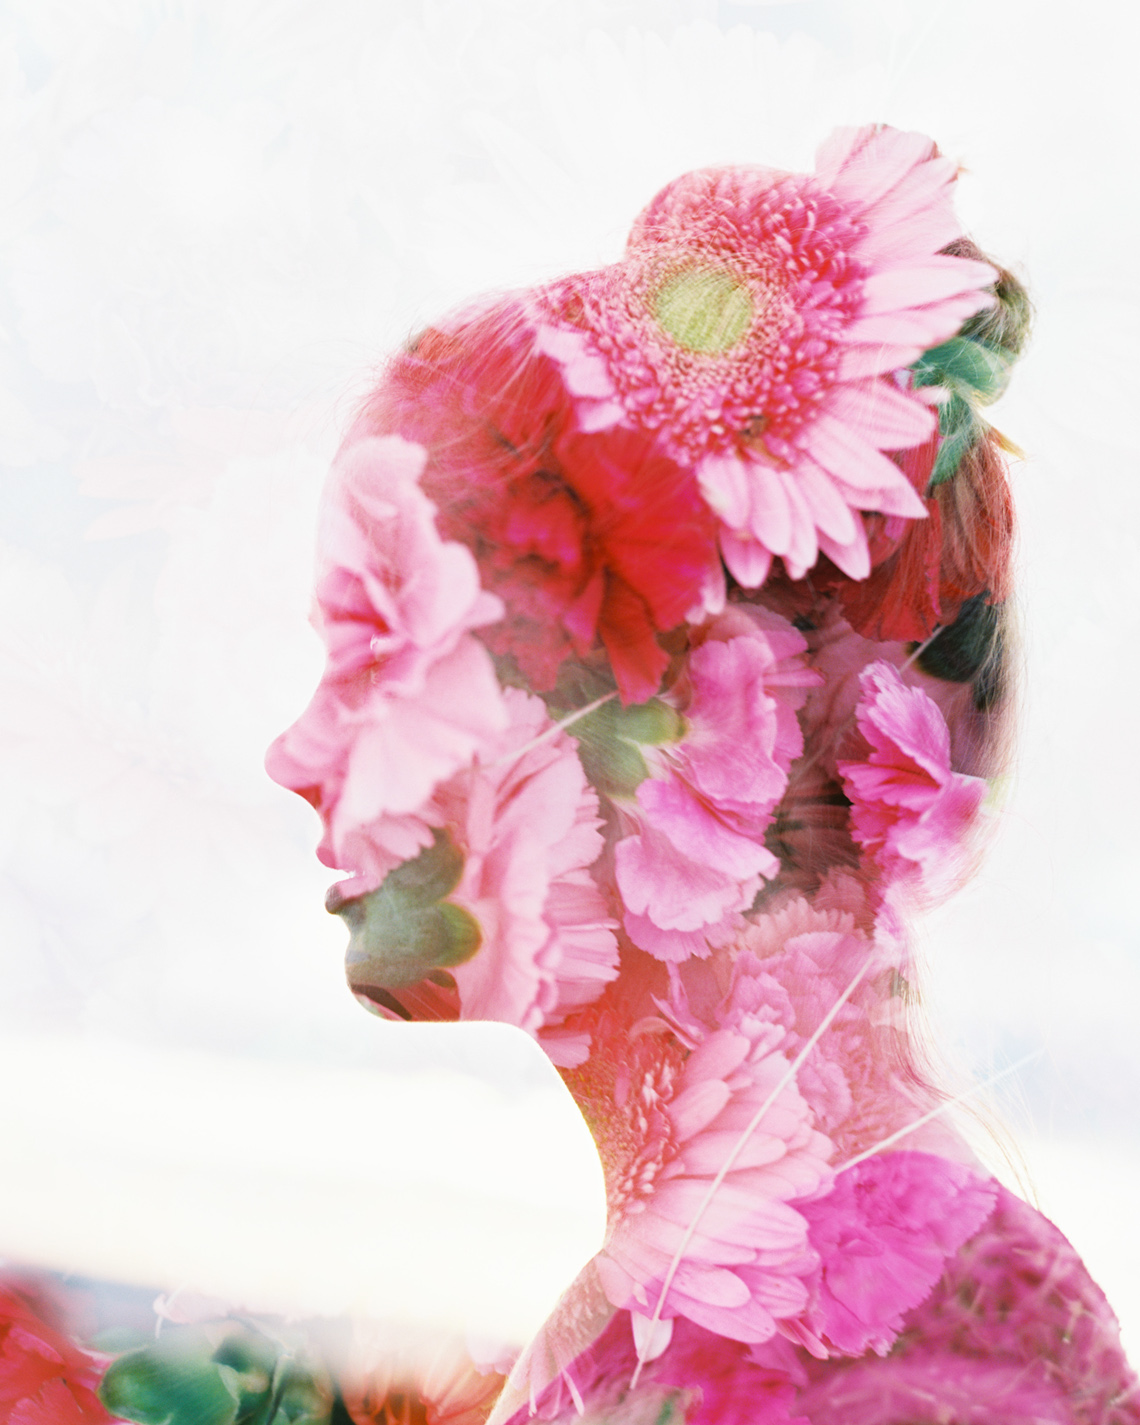 double exposure on film with pink flowers and girl with bun on head by wendy laurel-1e exposure on film with pink flowers and girl with bun on head by wendy laurel-1